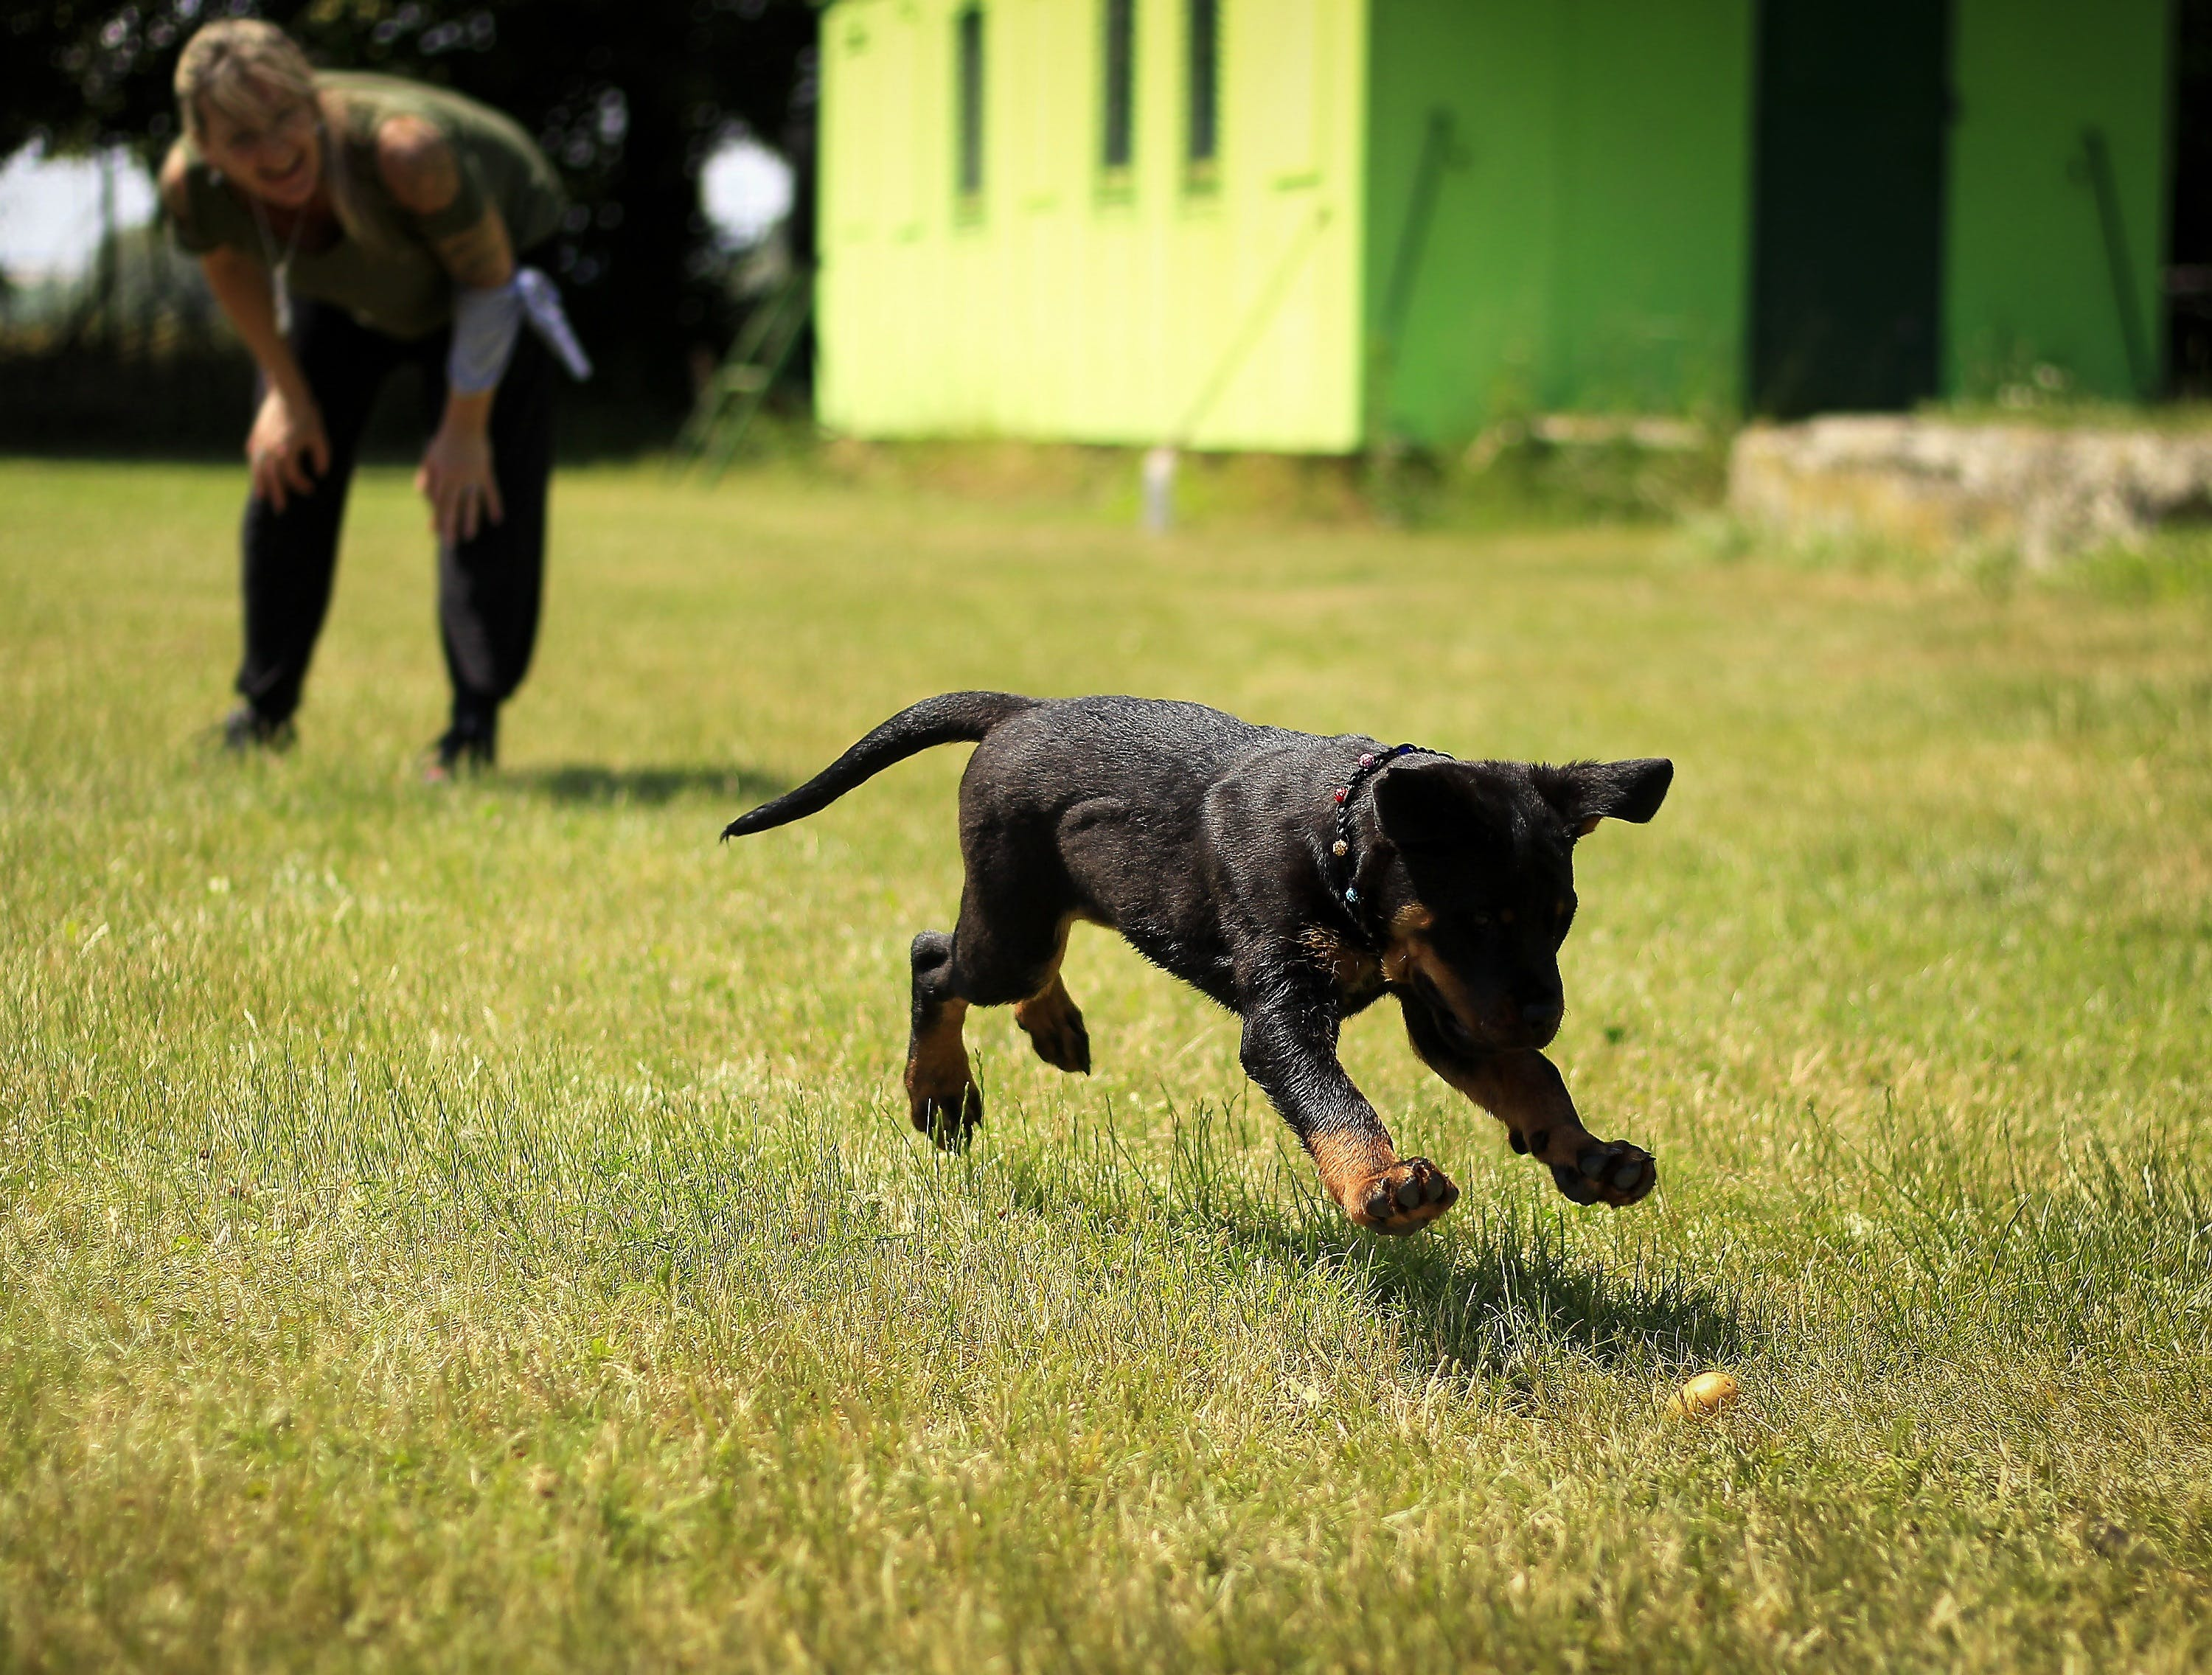 Black and Tan Rottweiler Puppy Running on Lawn Grass